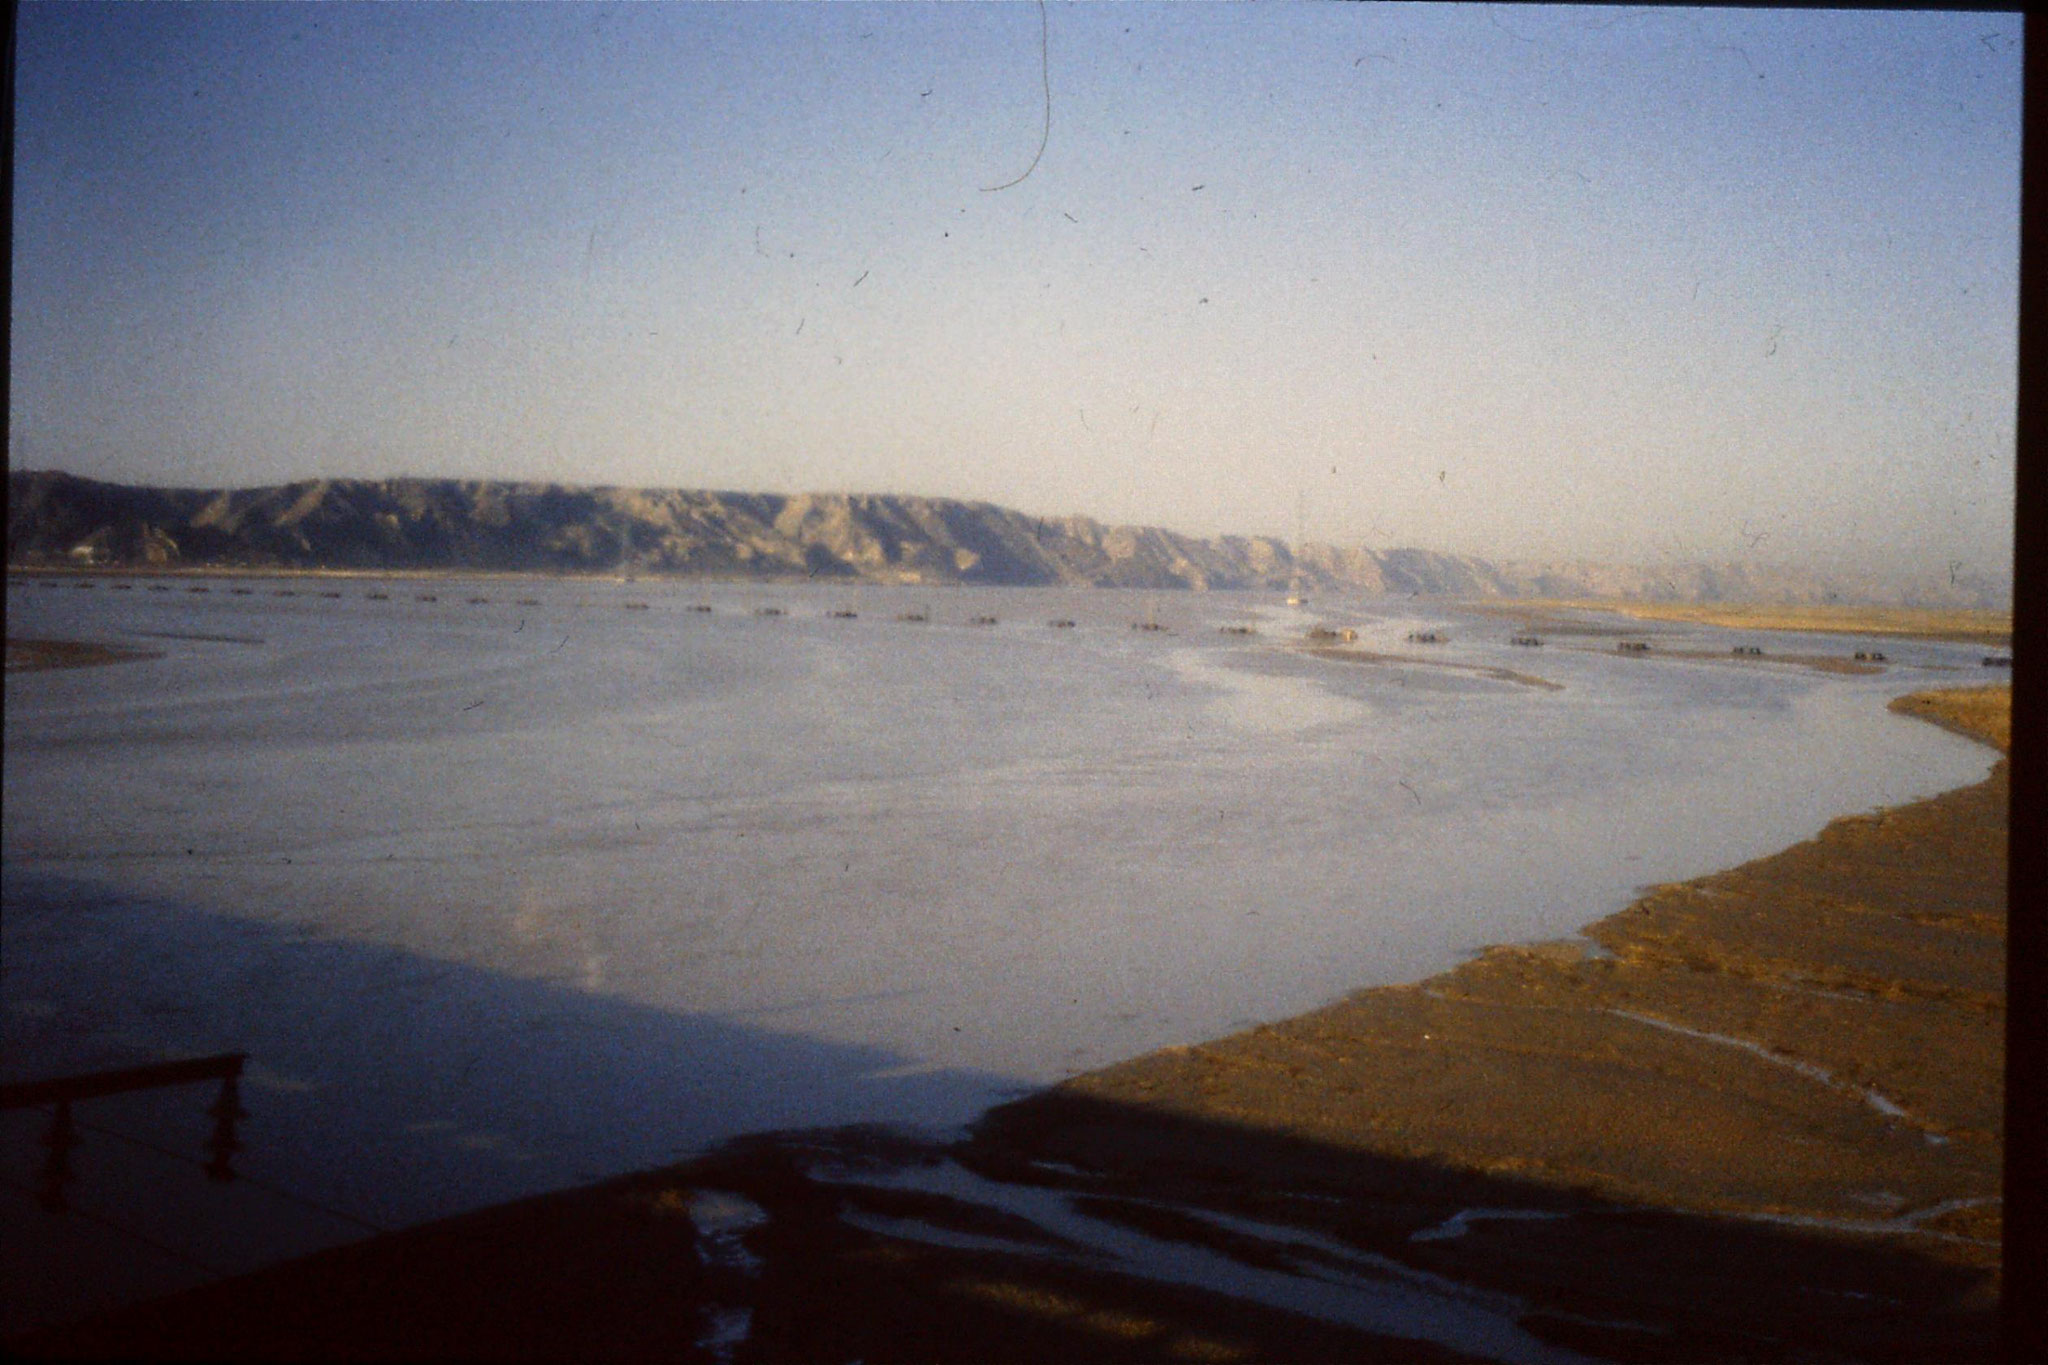 7/3/1989: 1: Journey Xian to Beijing, 0818 Yellow River